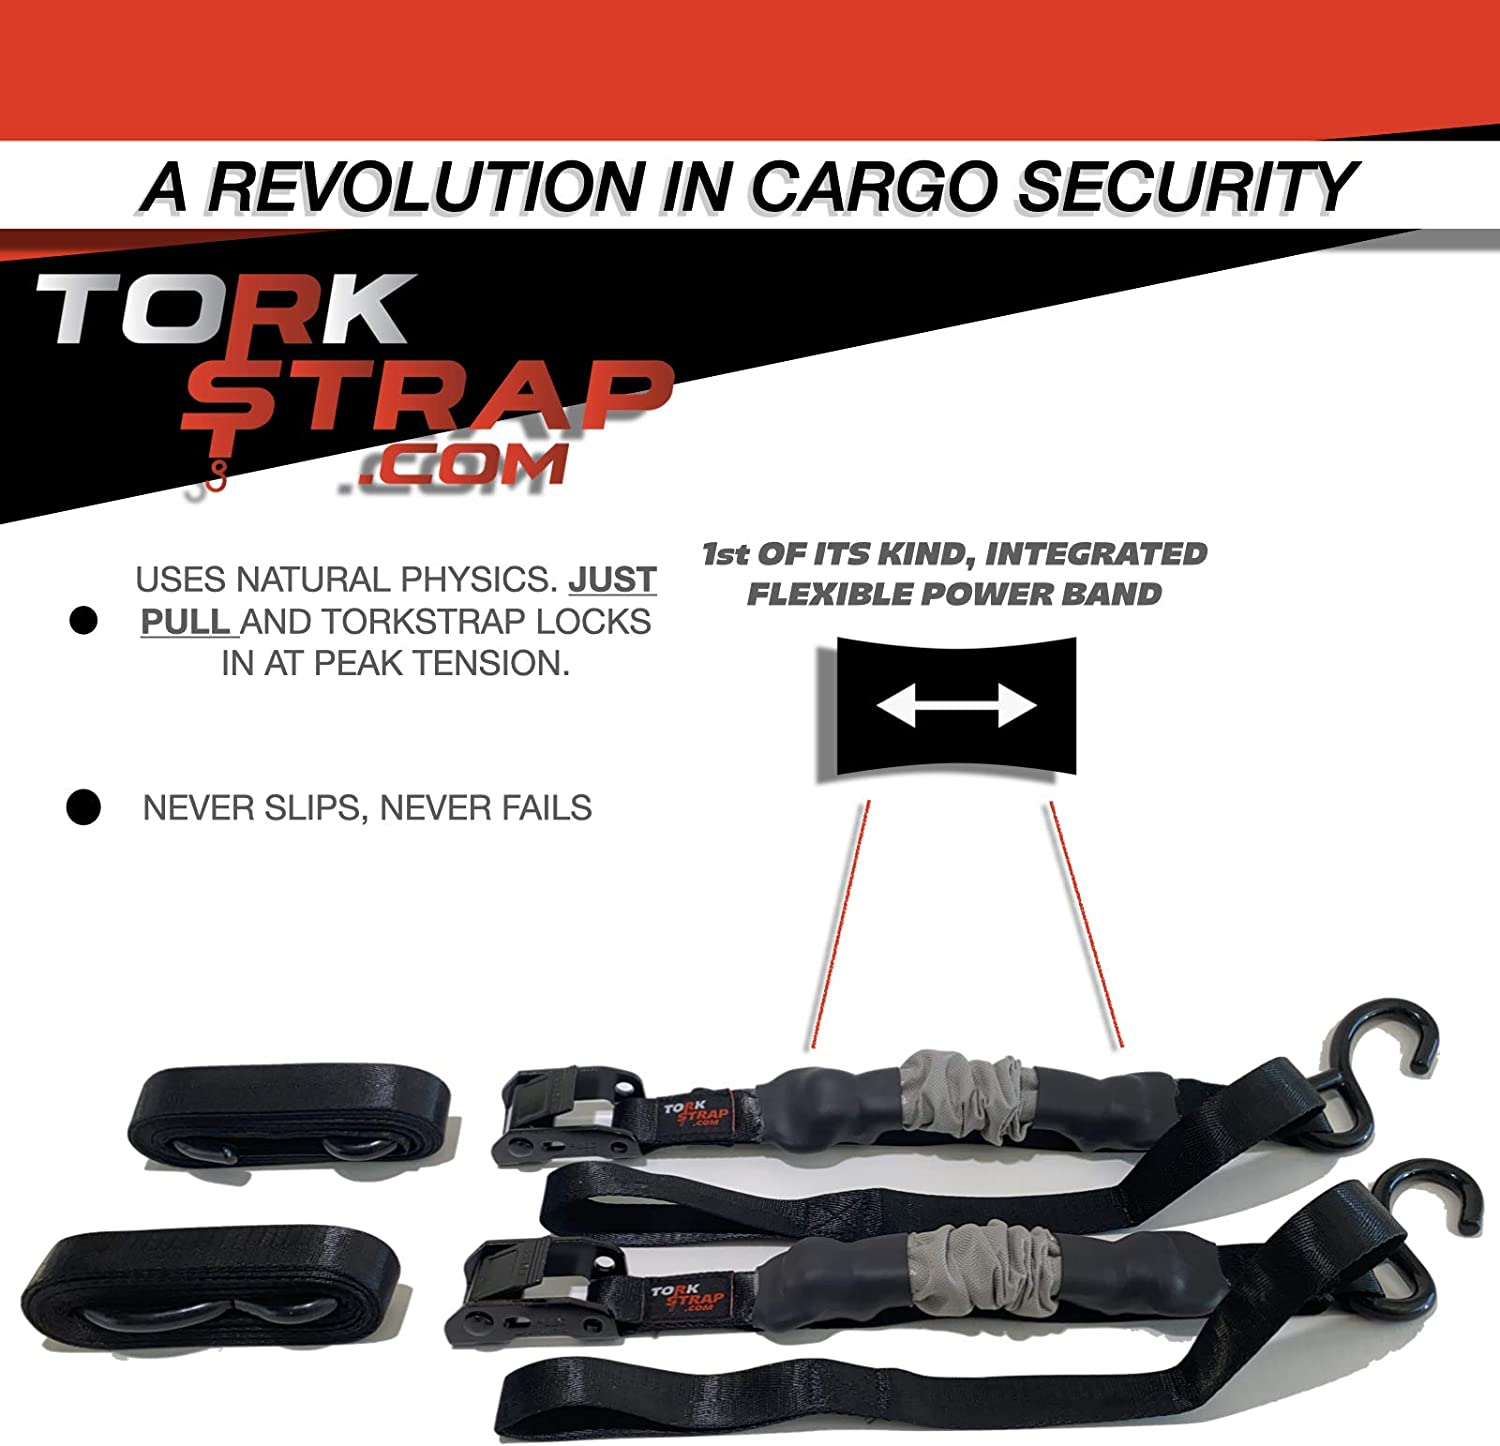 Like a Ratchet and Lashing Strap Combined 900lbs MIN Break Strength 300lbs Safe Work Load Never Slips Bungee Just Pull No Clunky Mechanisms Always Fits Medium Duty TorkStrap M300 Model 300